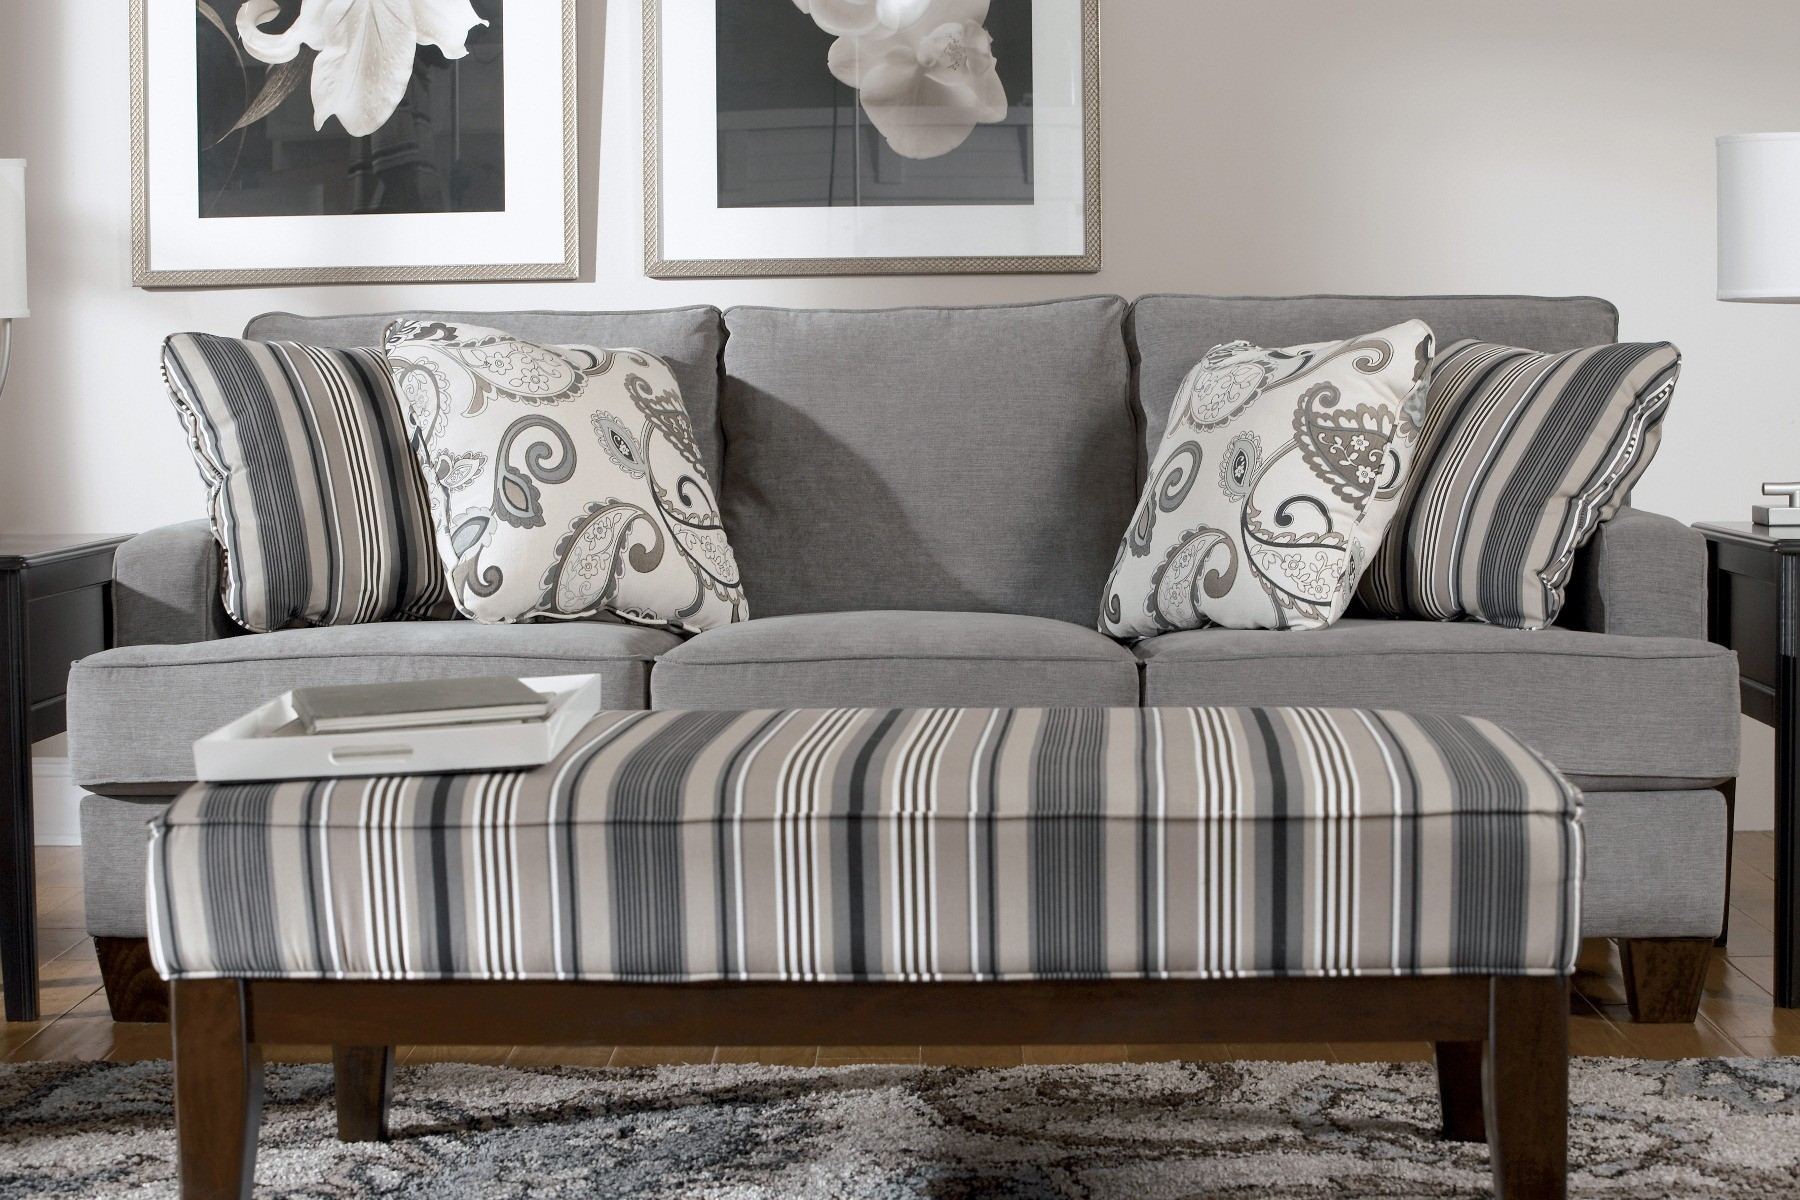 steel sofa set online chennai small es configurable sectional multiple colors walmart yvette living room from ashley 77900 coleman